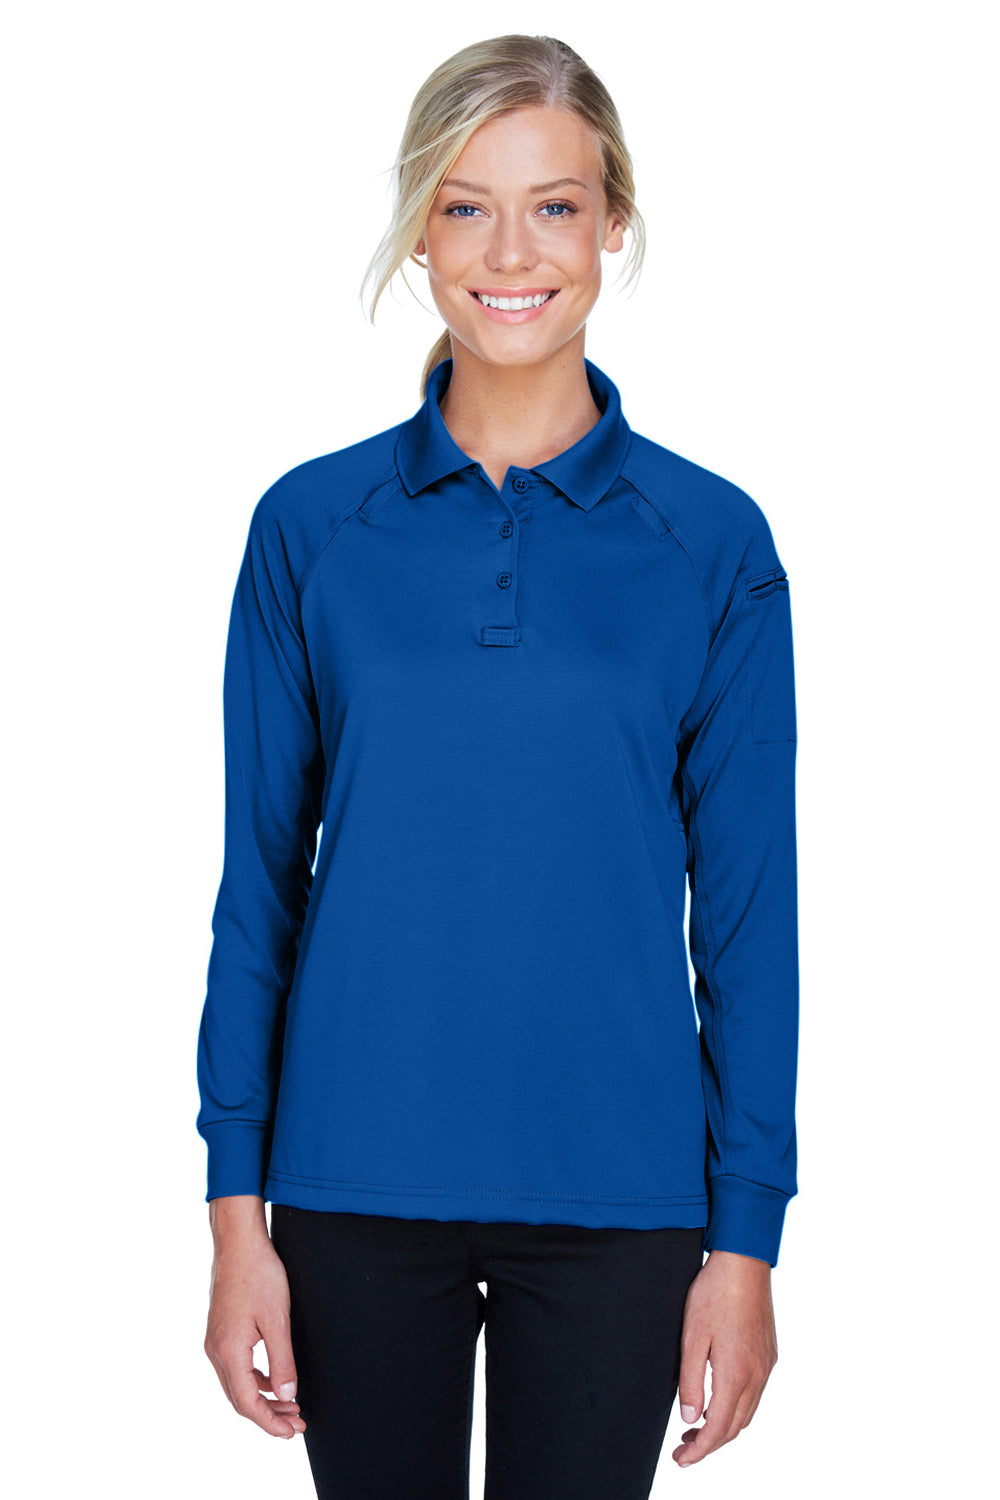 Harriton M211LW Advantage Tactical Moisture Wicking Long Sleeve Polo Shirt Royal Blue Front